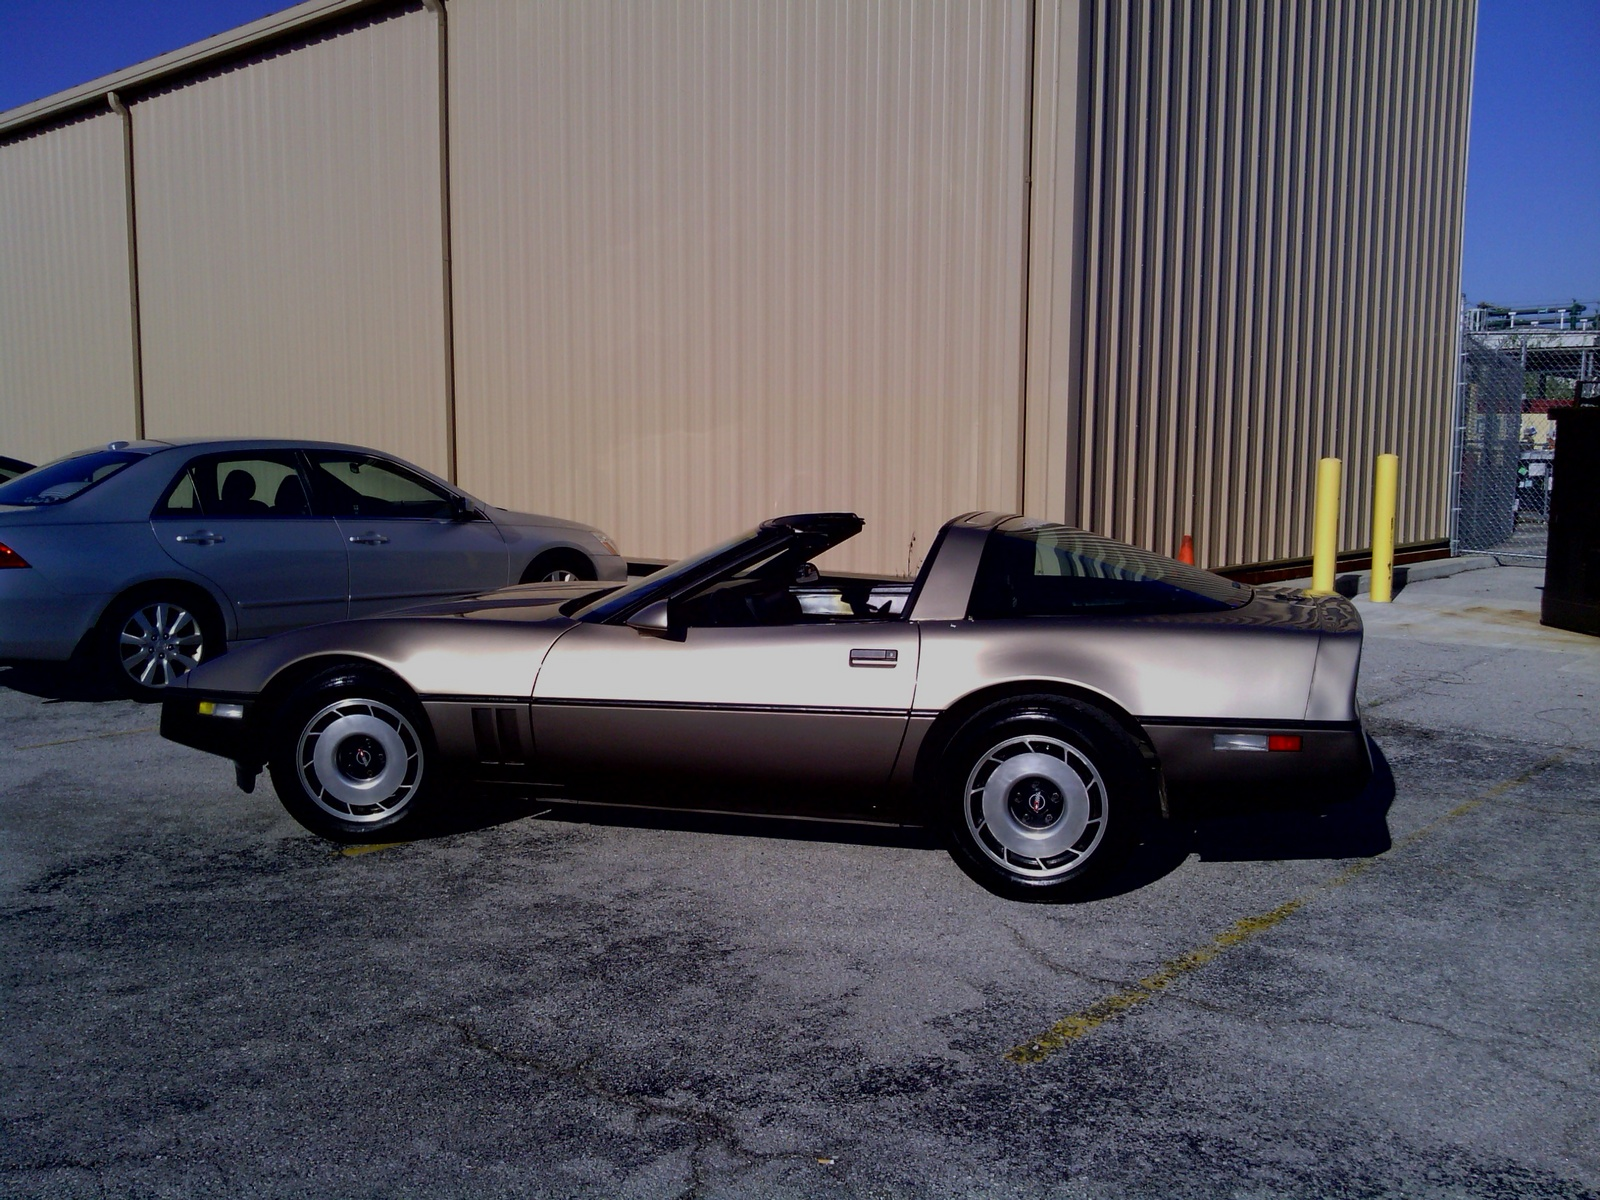 1984 Chevrolet Corvette Coupe, great old classic., exterior